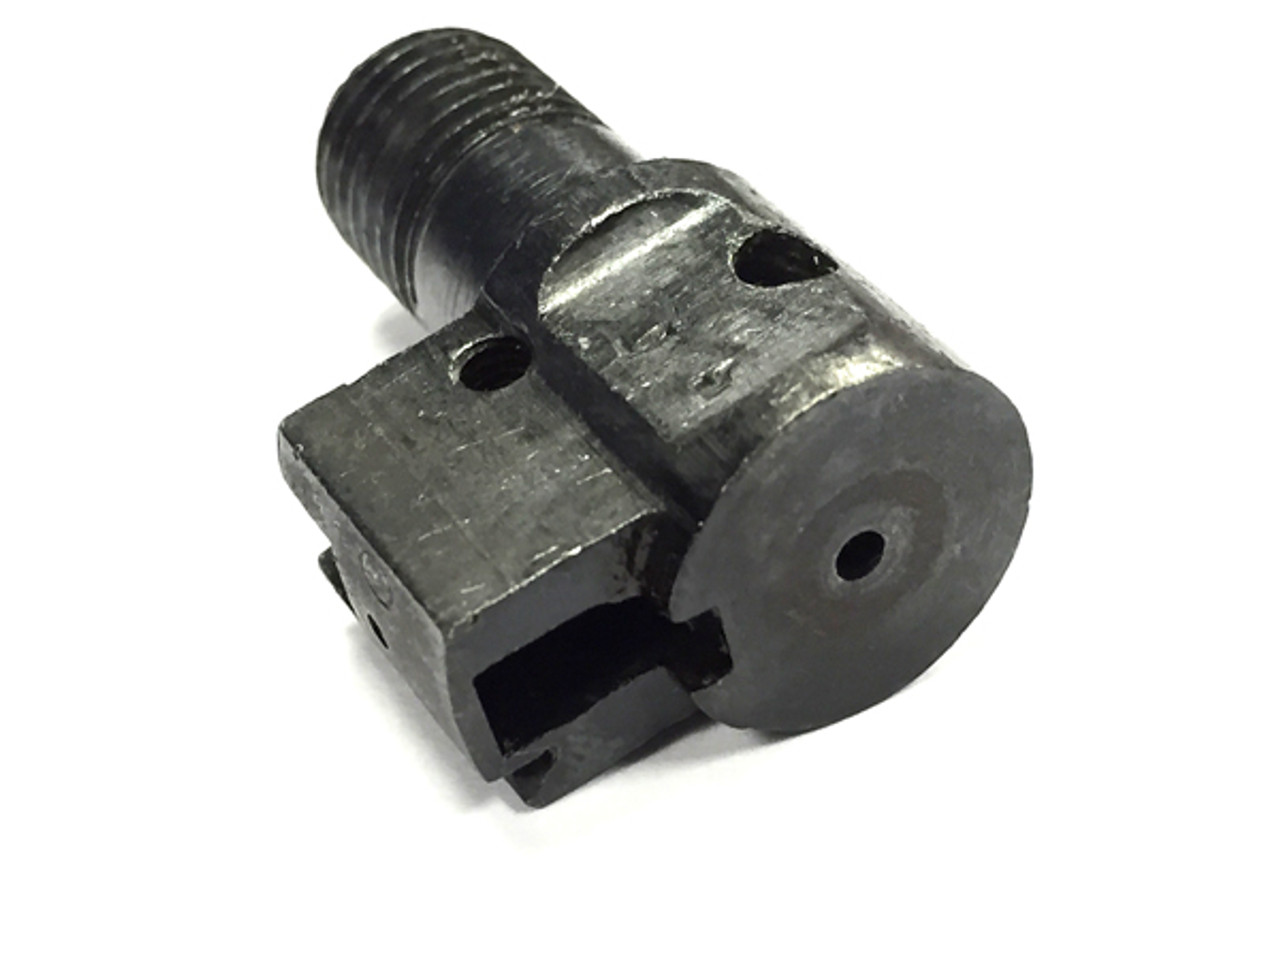 65: No. 4 MK I Bolt Head (size 0) USED excellent condition